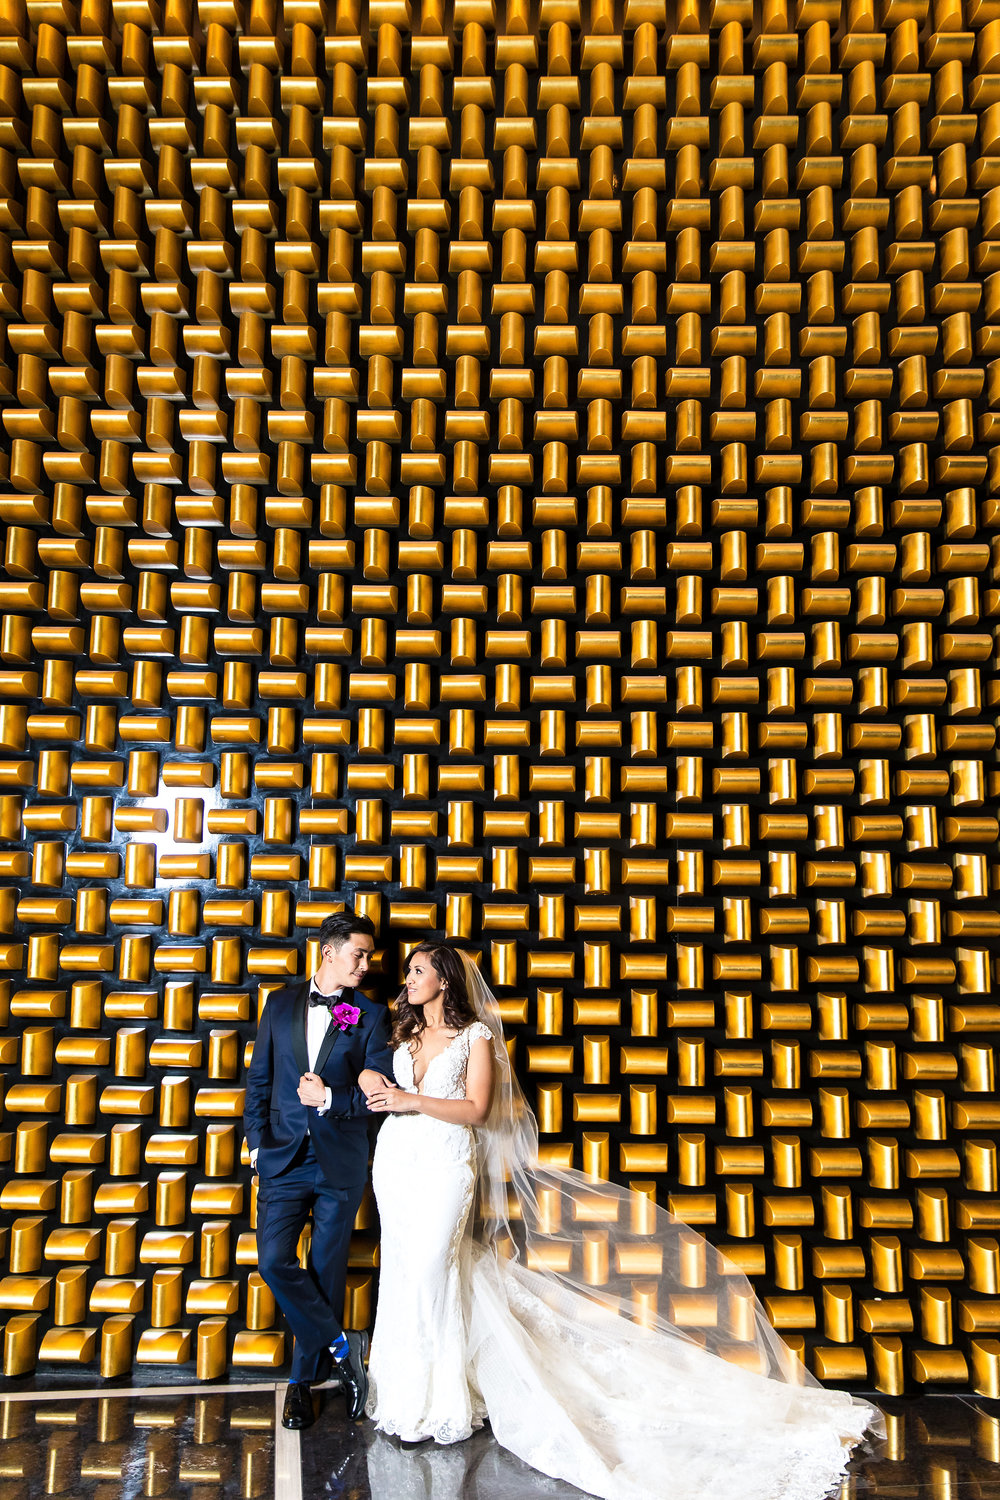 Iconic gold wall at the Mandarin Oriental Las Vegas.  Brides and grooms love this as a photo backdrop!  Wedding Planner:  Andrea Eppolito Events  |   Photography  Brian Leahy   |  Videography  HOO Films   |  Venue & Catering:  Mandarin Oriental  / Waldorf Astoria |  Floral & Decor:  Destinations by Design    |  Lighting:  LED Unplugged  |  Music:  DJ Breeze II   |  Hair & Make Up:  Amelia C & Co   |  Invitations by  Bliss & Bone   |  Menu and Escort Cards by  Meldeen